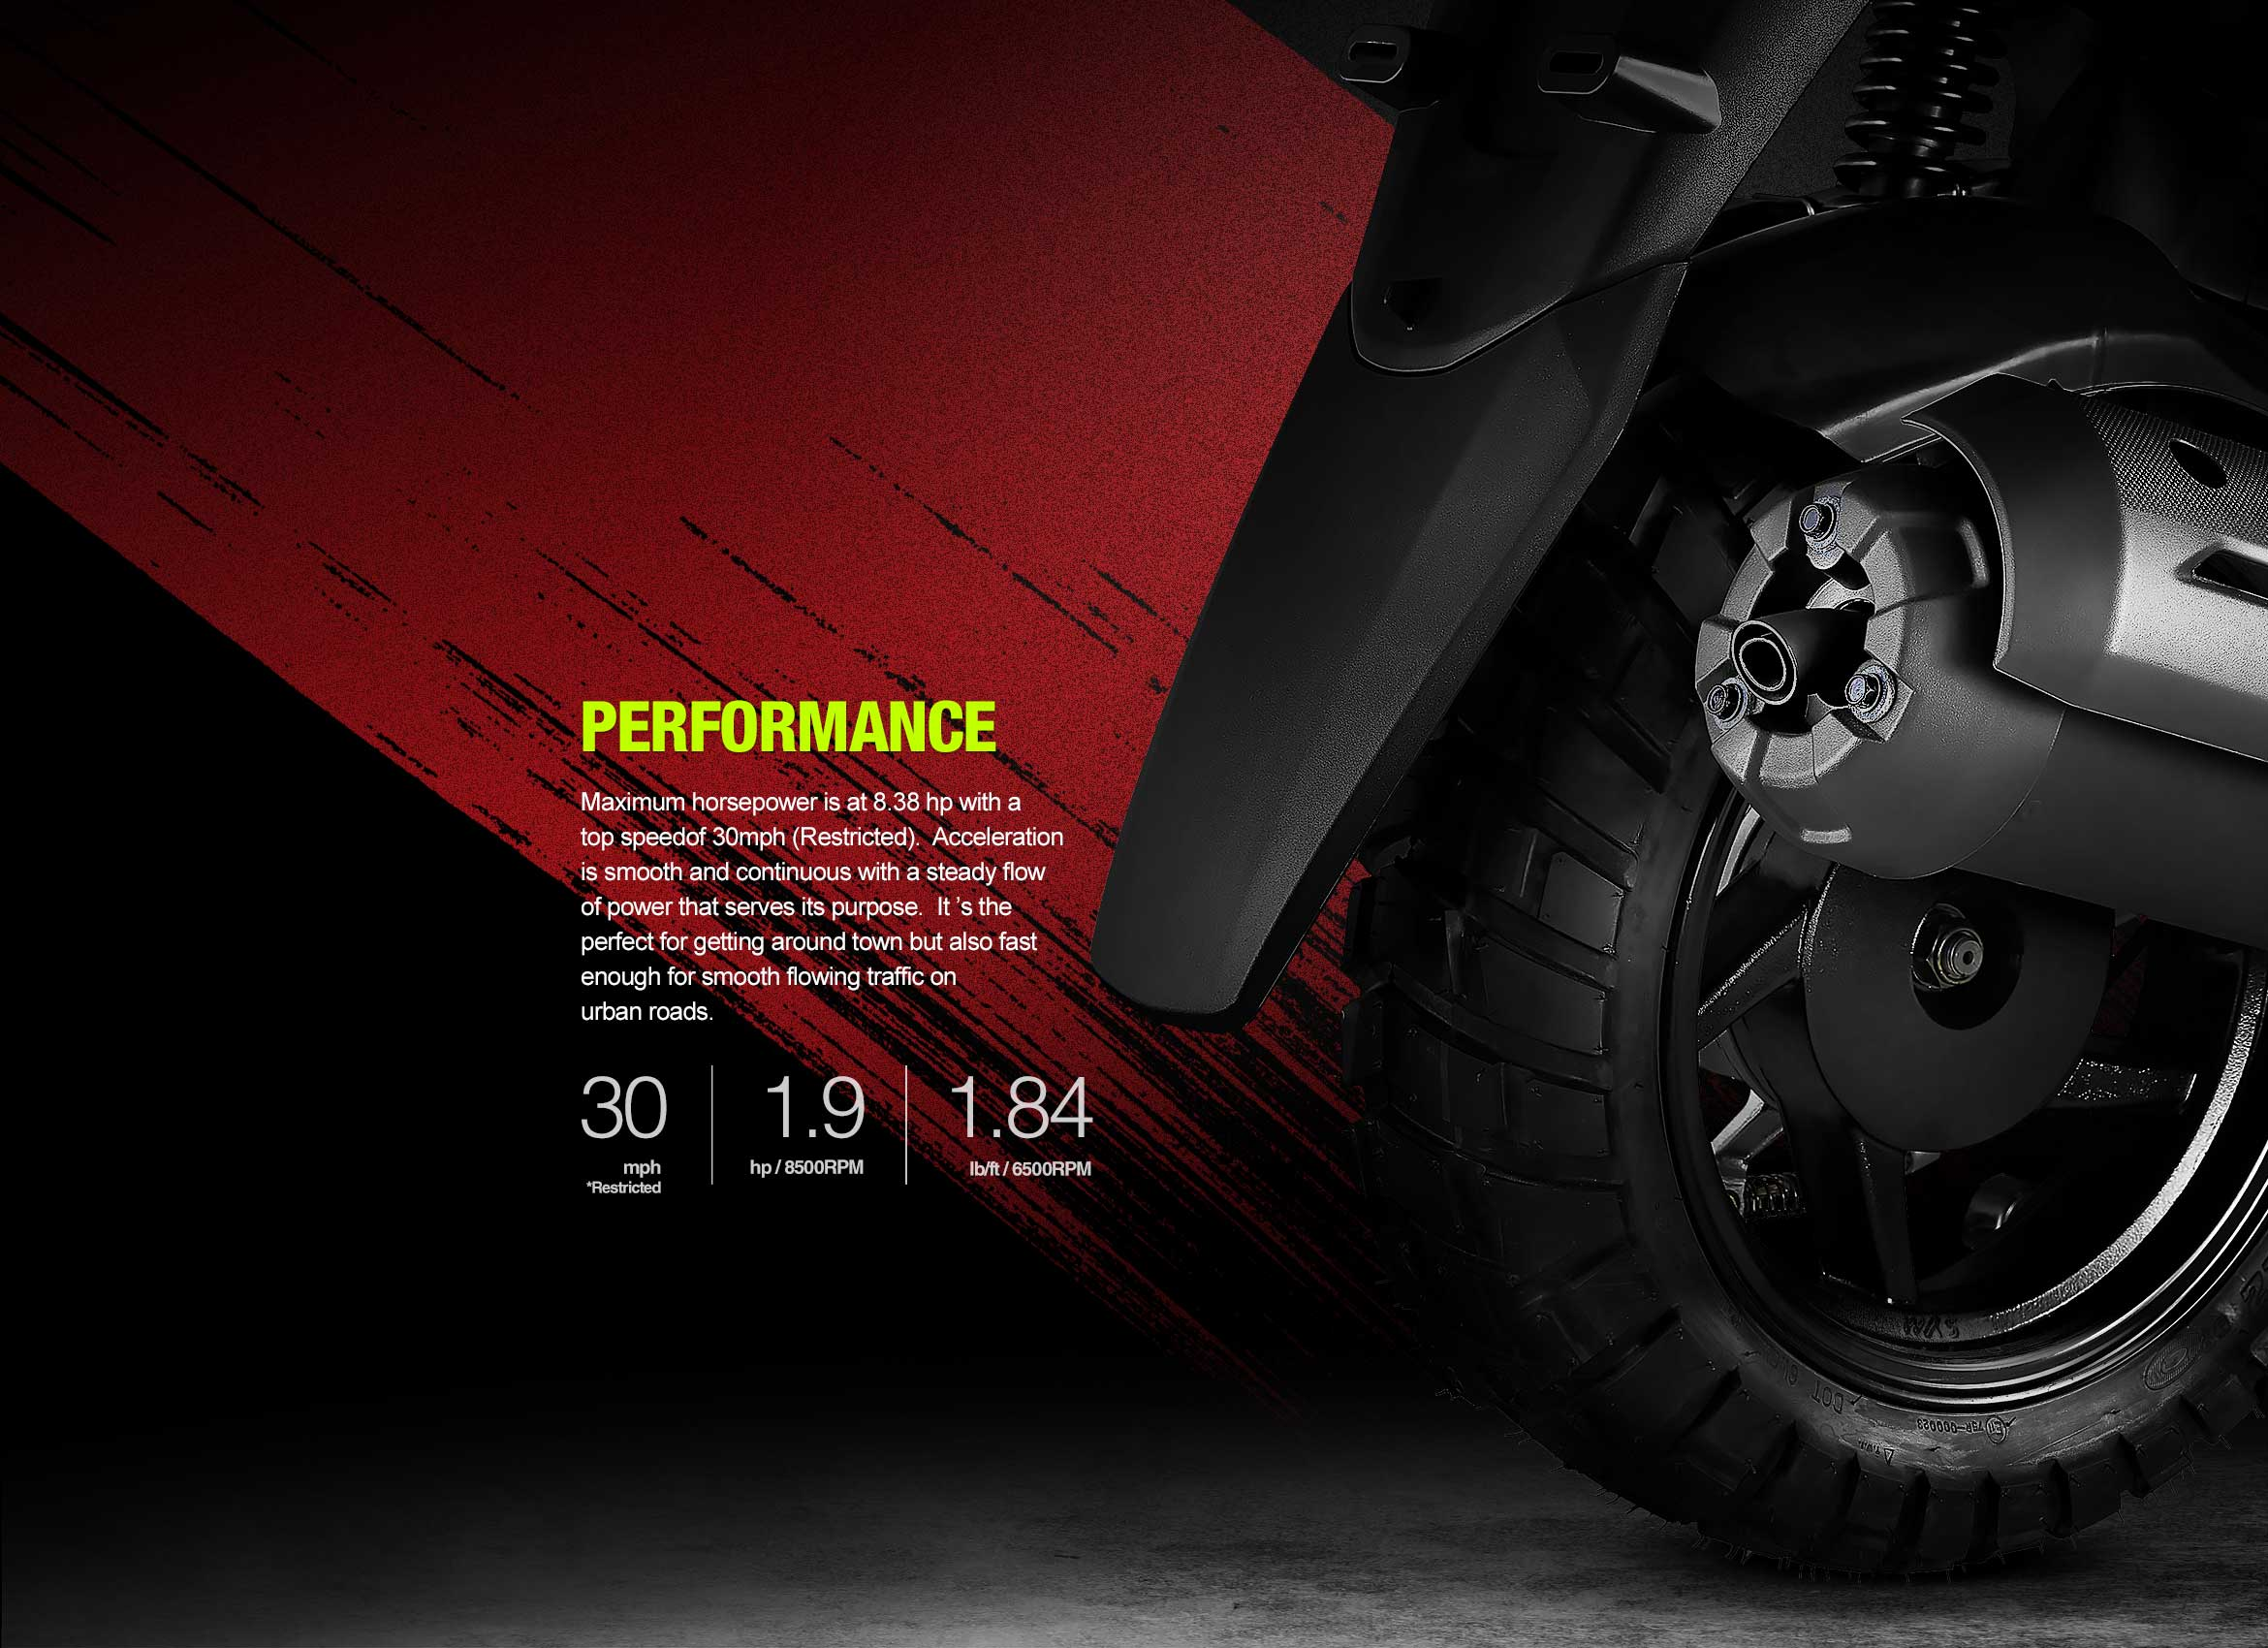 Performance